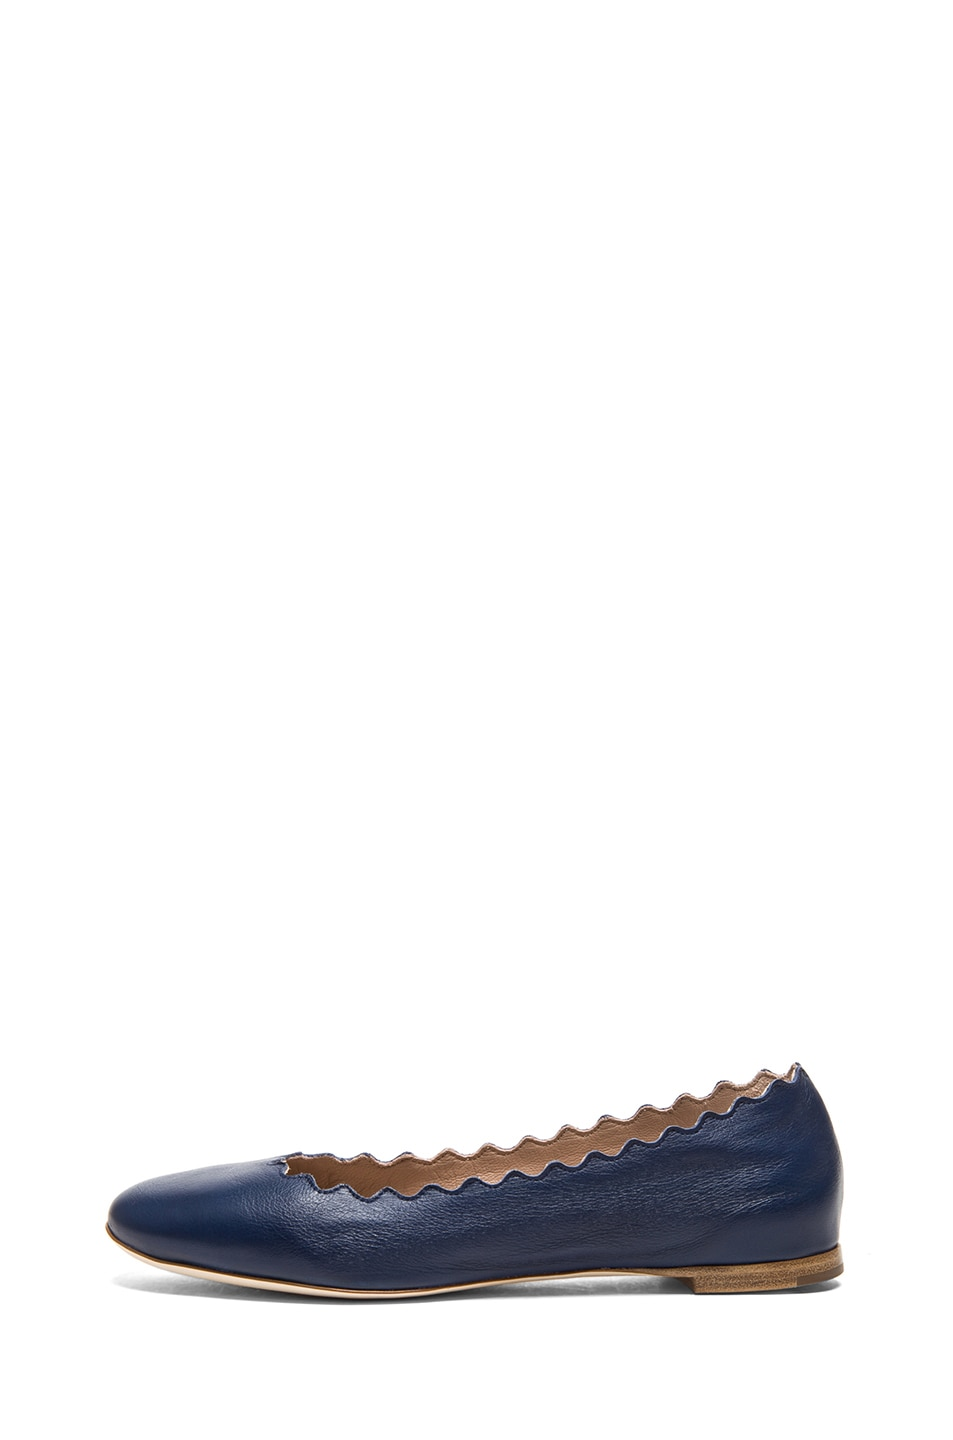 Image 1 of Chloe Lambskin Leather Scalloped Flats in Royal Navy